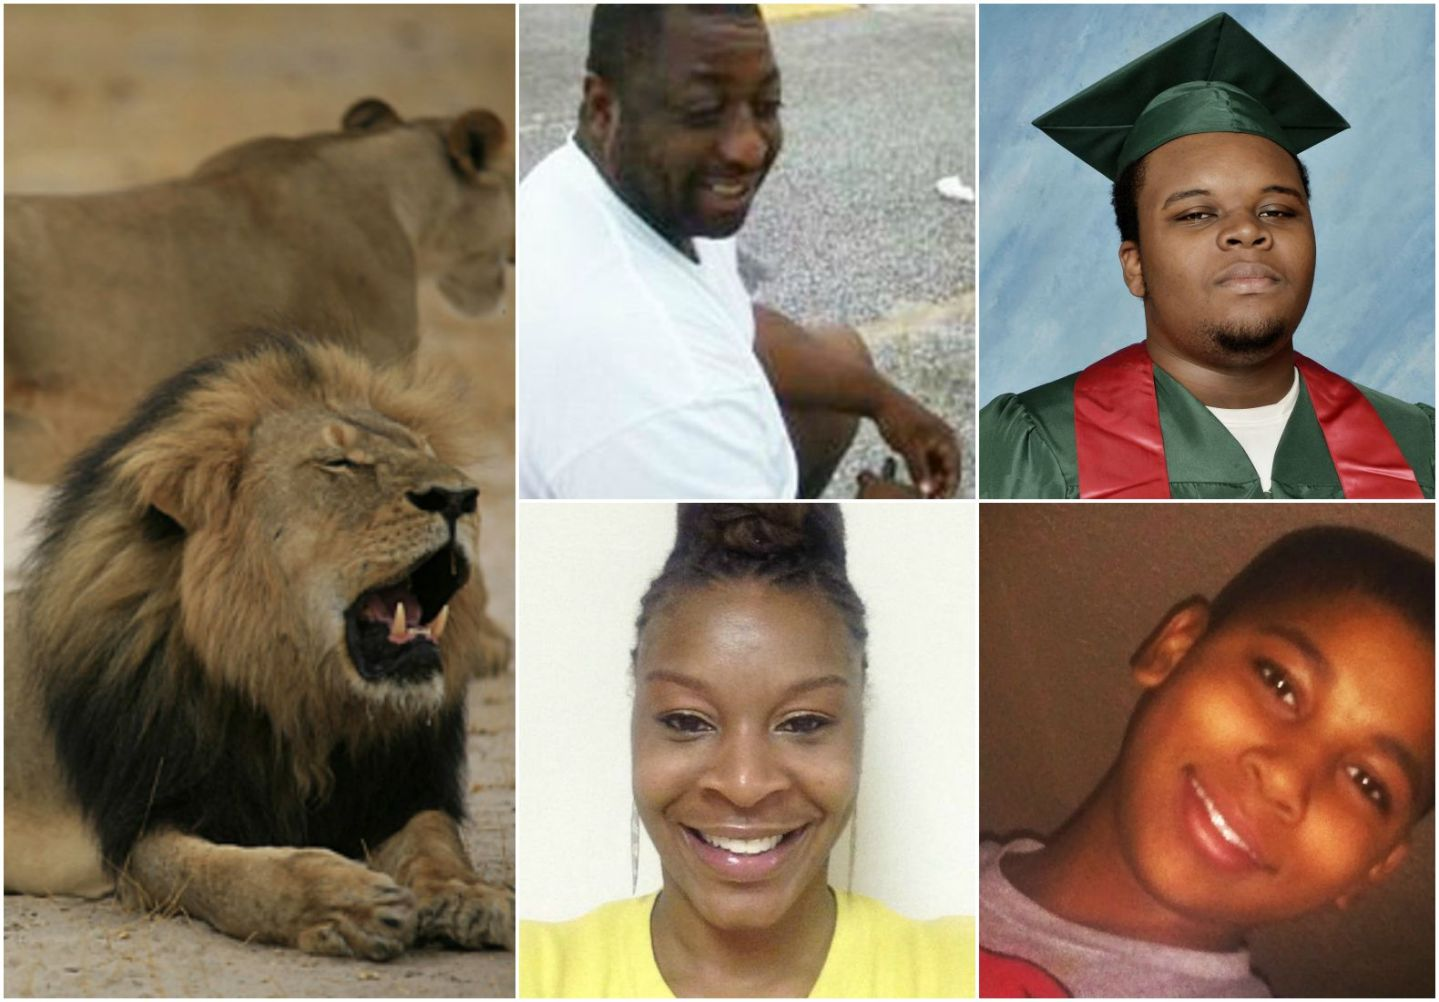 Why Does Cecil The Lion Receive More Humanity Than Slain Black Lives?